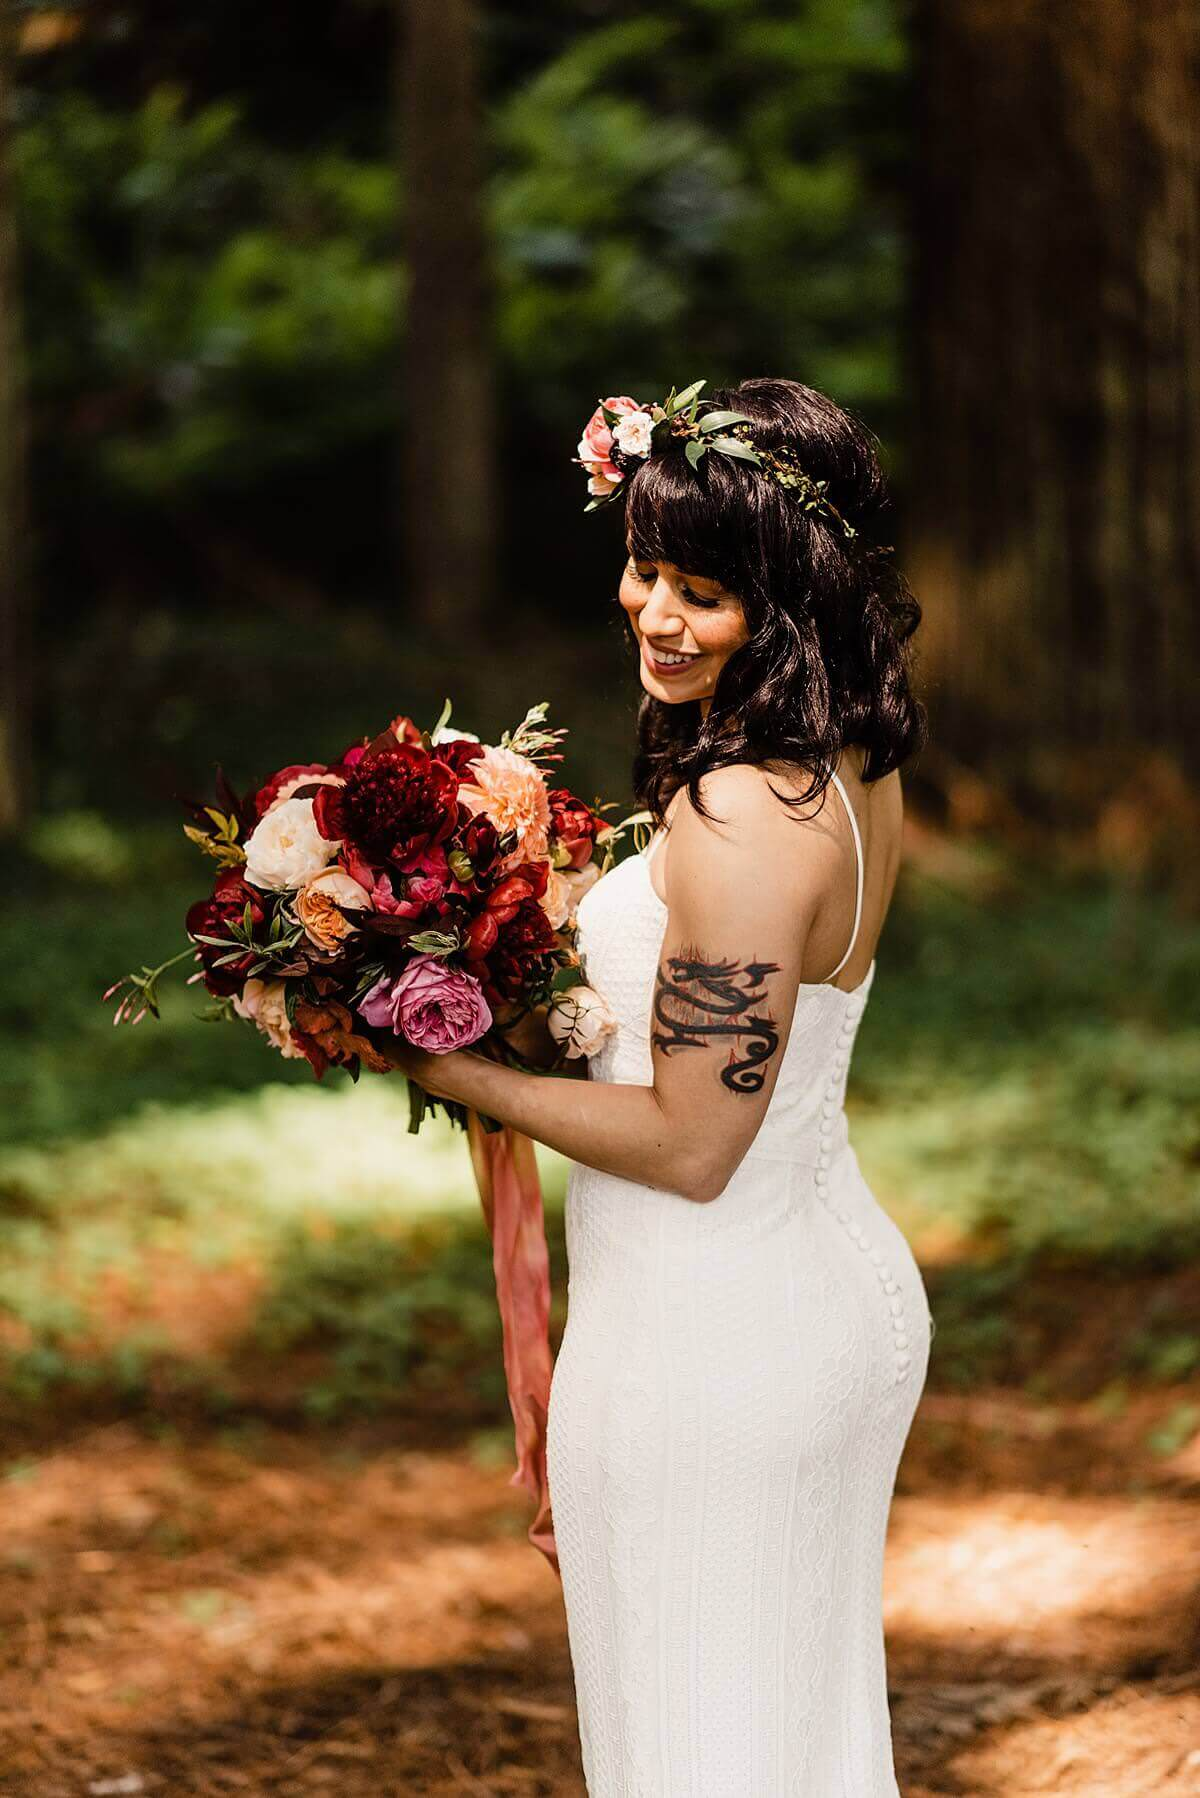 Allison-Brooks-Jedediah-Smiith-Redwoods-Adventure-Elopement-Wedding-S-Photography-Blog_0008.jpg